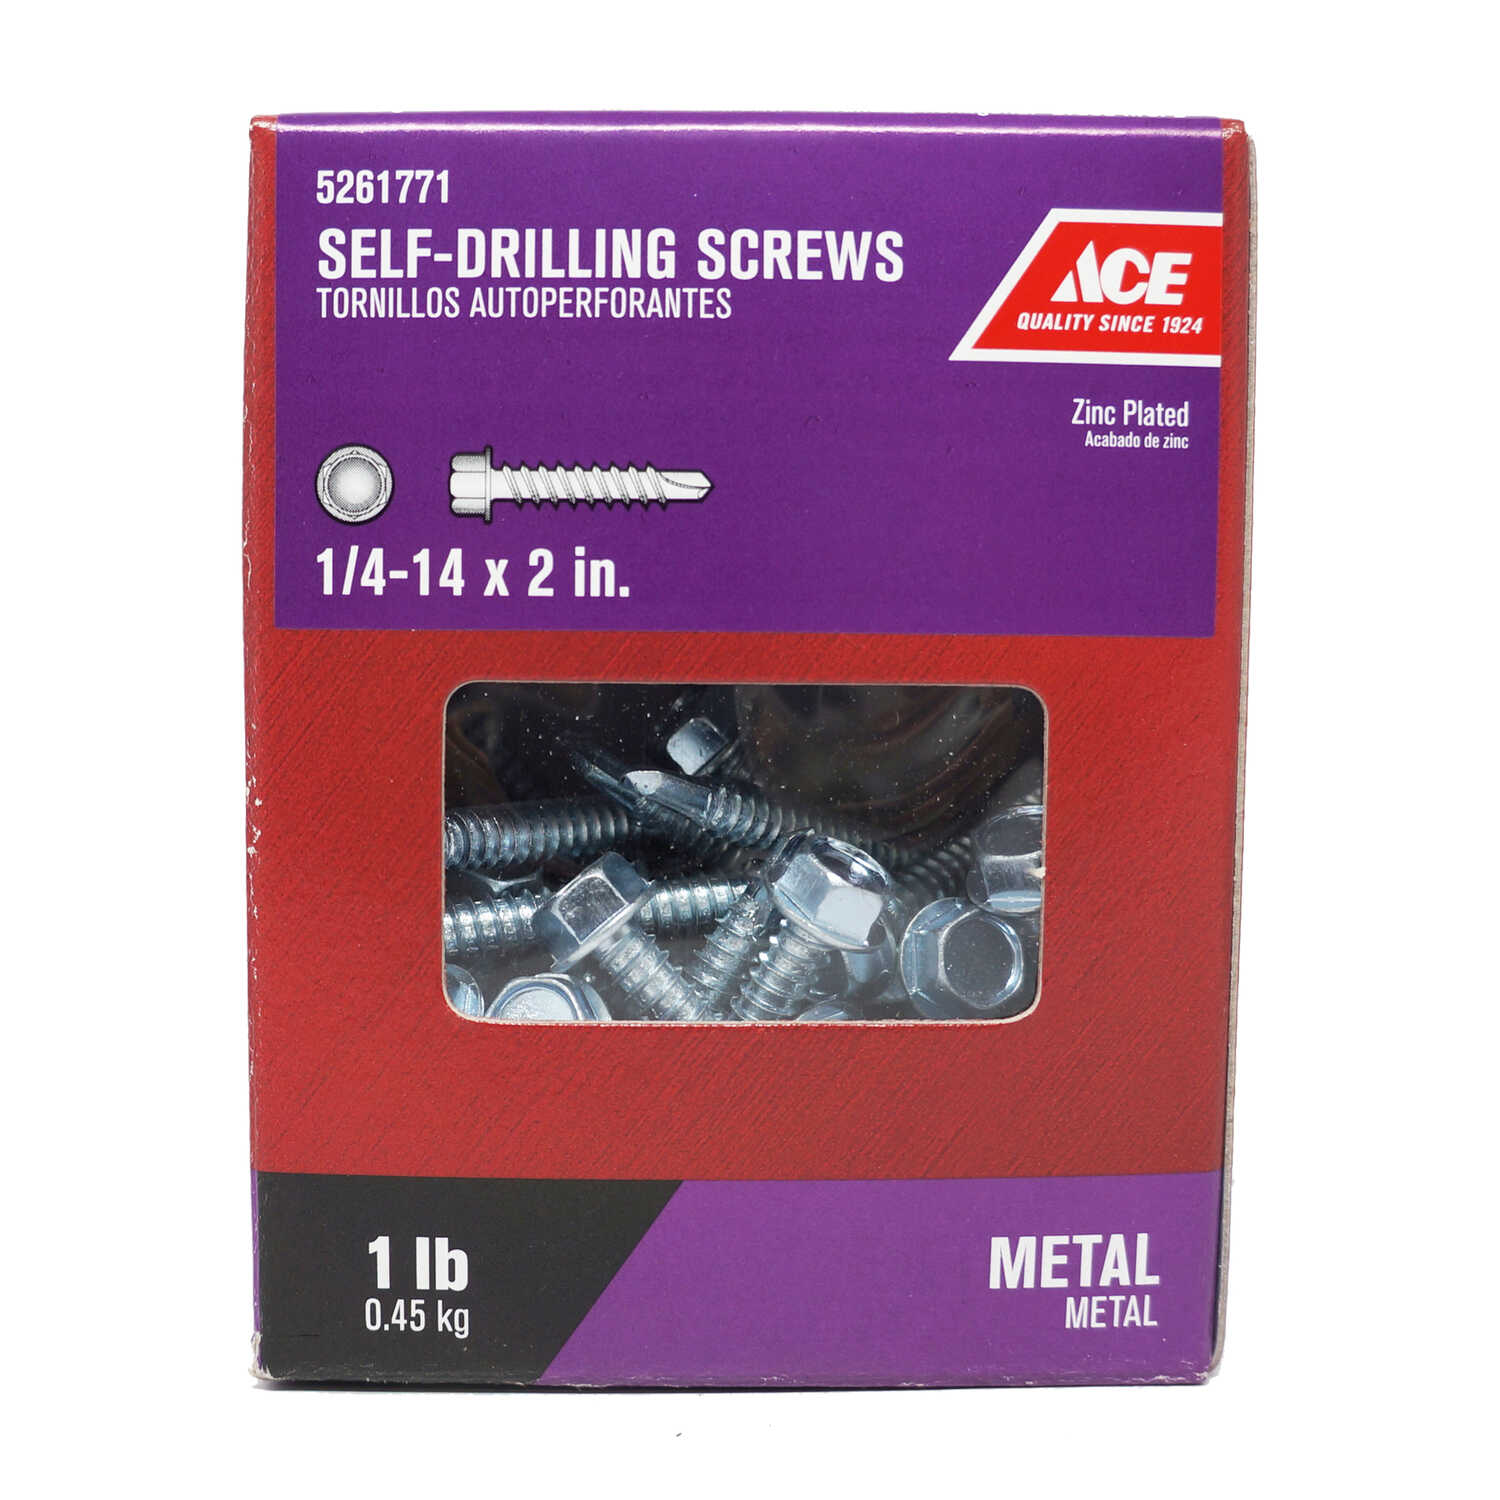 Ace  1/4-14 Sizes  x 2 in. L Hex Washer Head Steel  Self- Drilling Screws  1 lb. Hex  Zinc-Plated